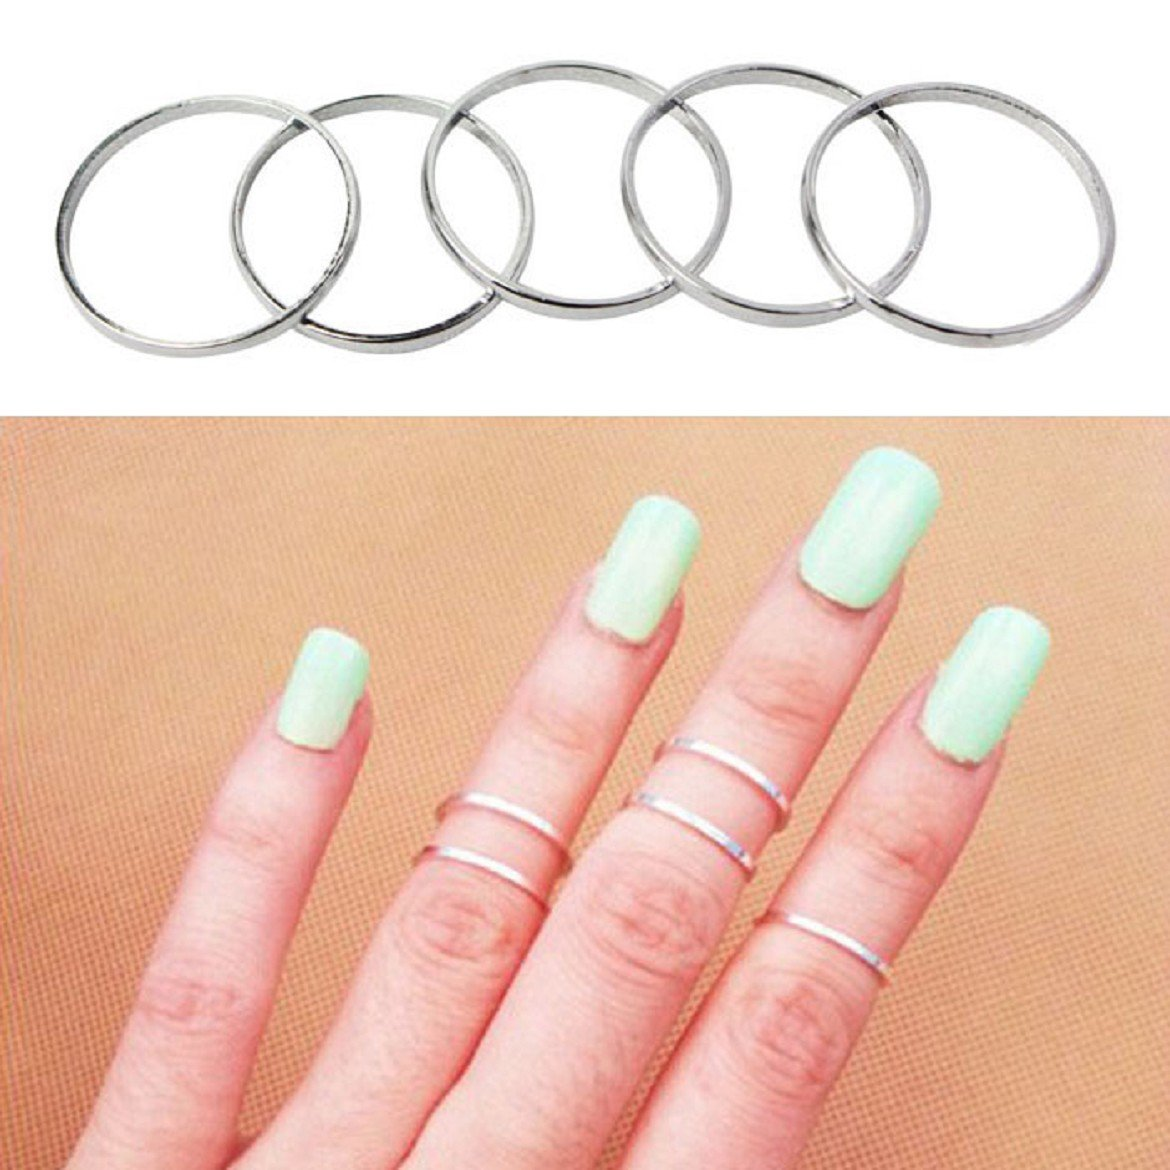 wy 2014 Susenstore 5pcs Urban Silver Stack Plain Cute Above Knuckle Ring Band Midi Ring Set Sankuwen JbK2y-[Jewelry00024]-(Silver 5pcs)